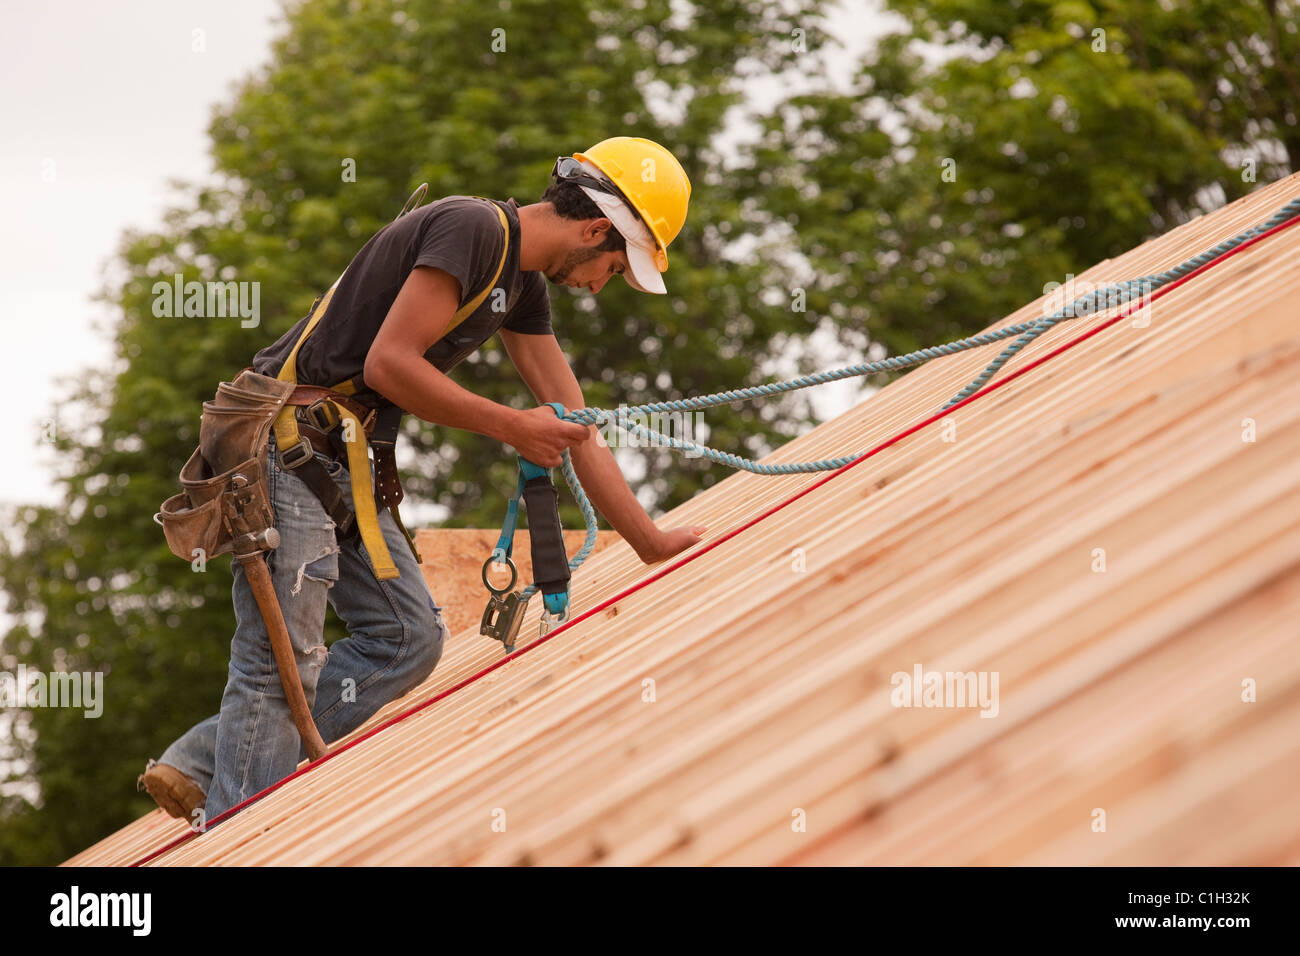 Carpenter using safety strap on the roof of a house under construction : roof carpenter - memphite.com